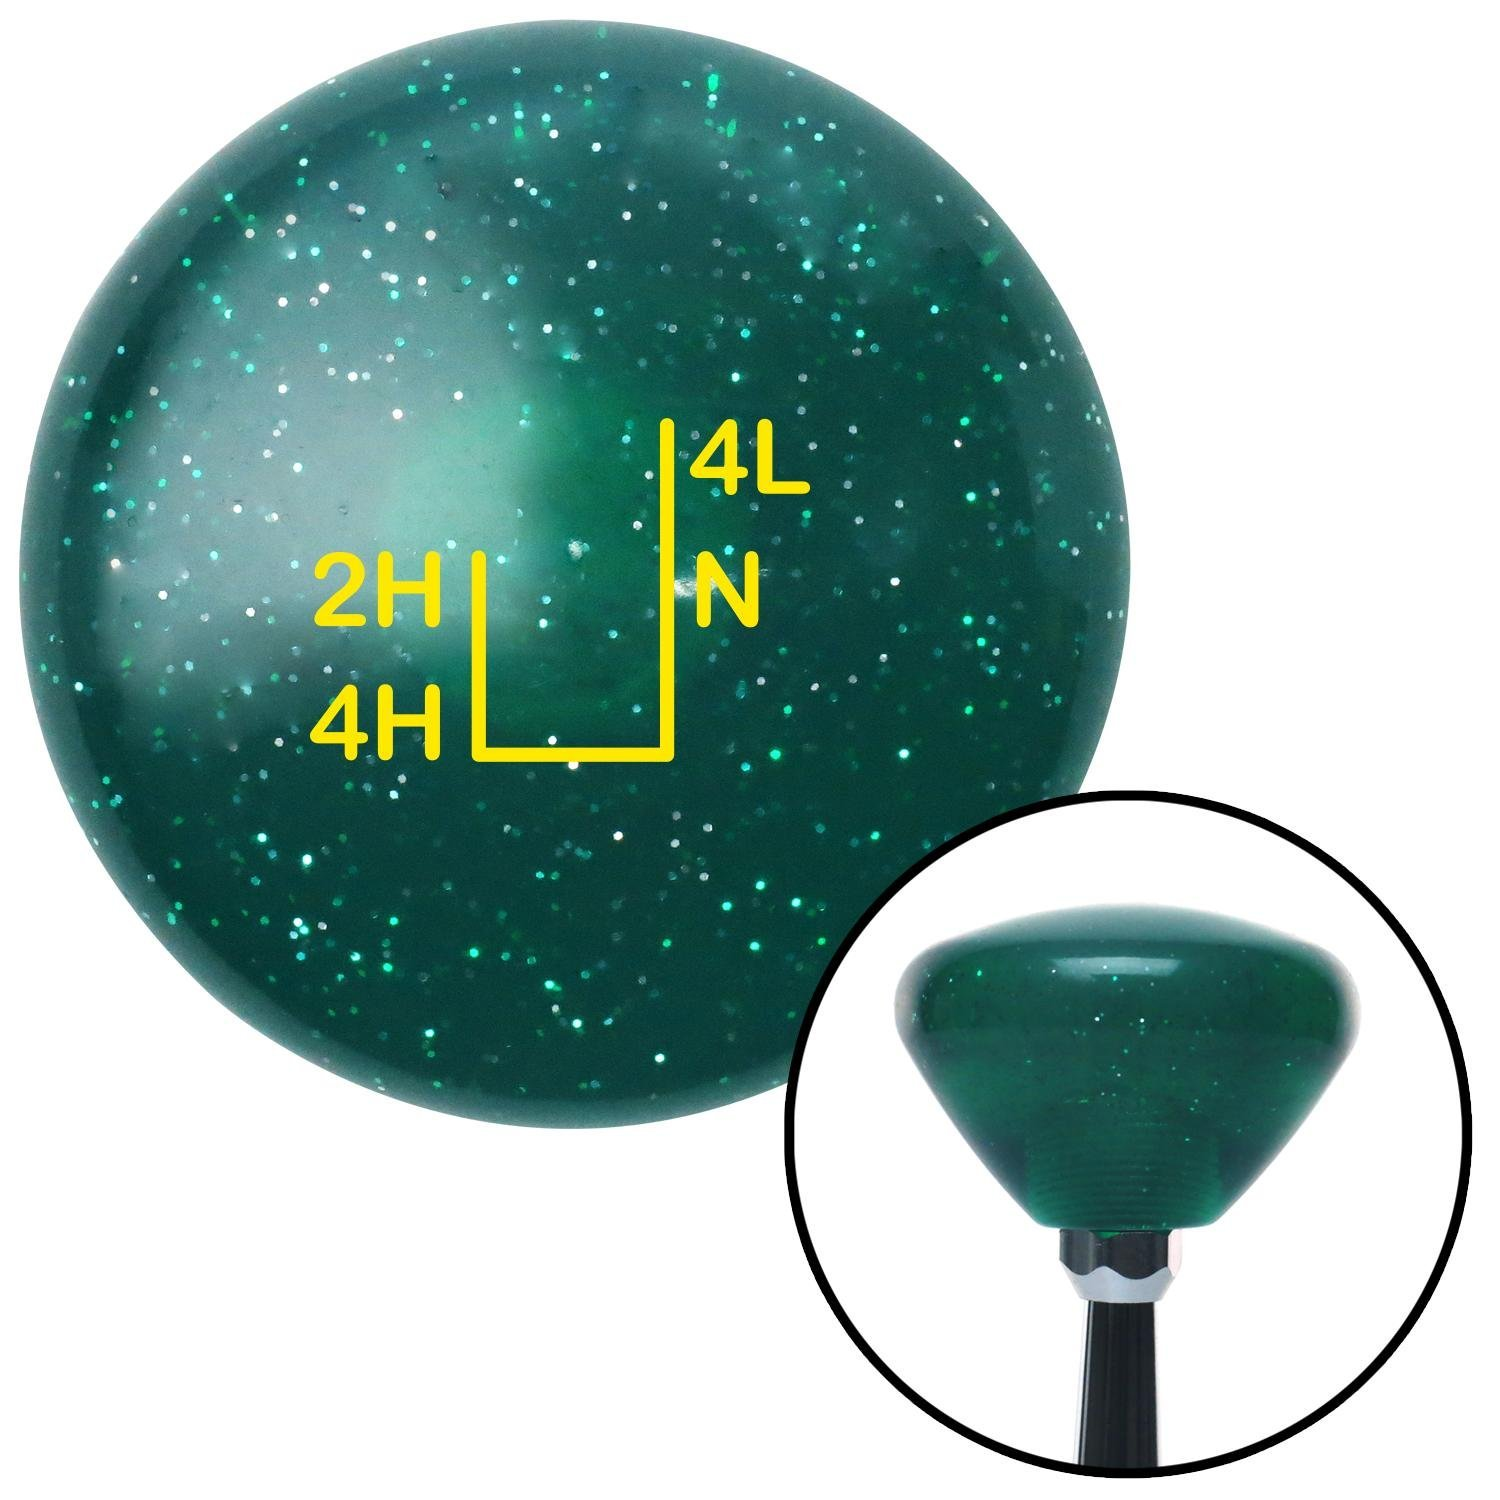 American Shifter 208626 Green Retro Metal Flake Shift Knob with M16 x 1.5 Insert Yellow Shift Pattern 35n